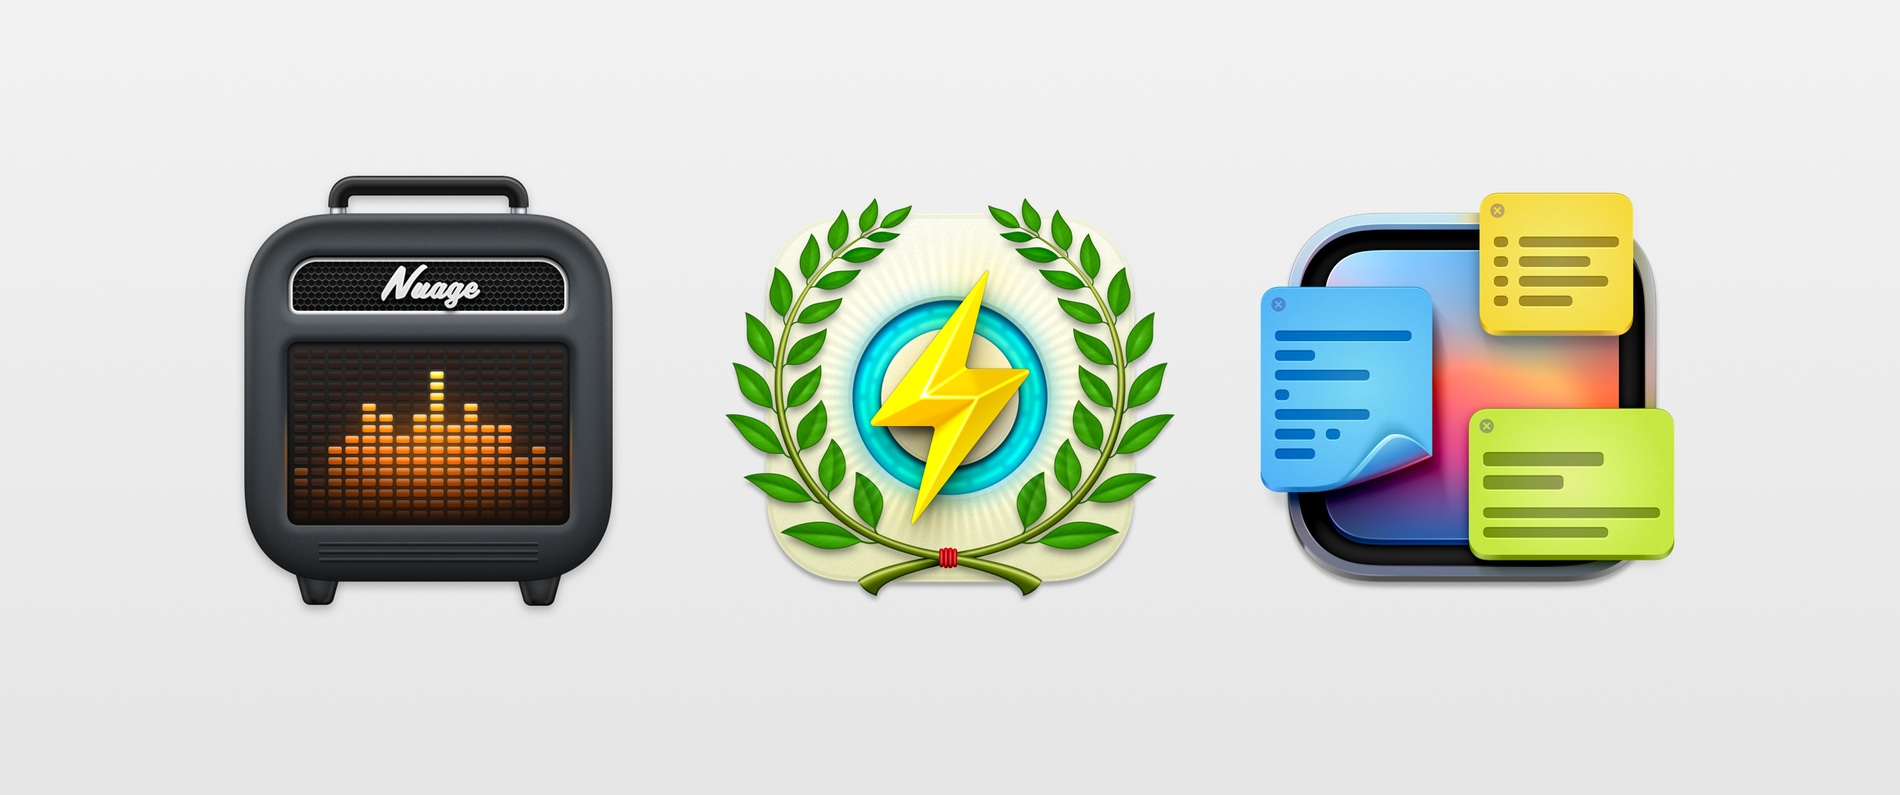 Header image featuring three icons designed by Yannick Lung.